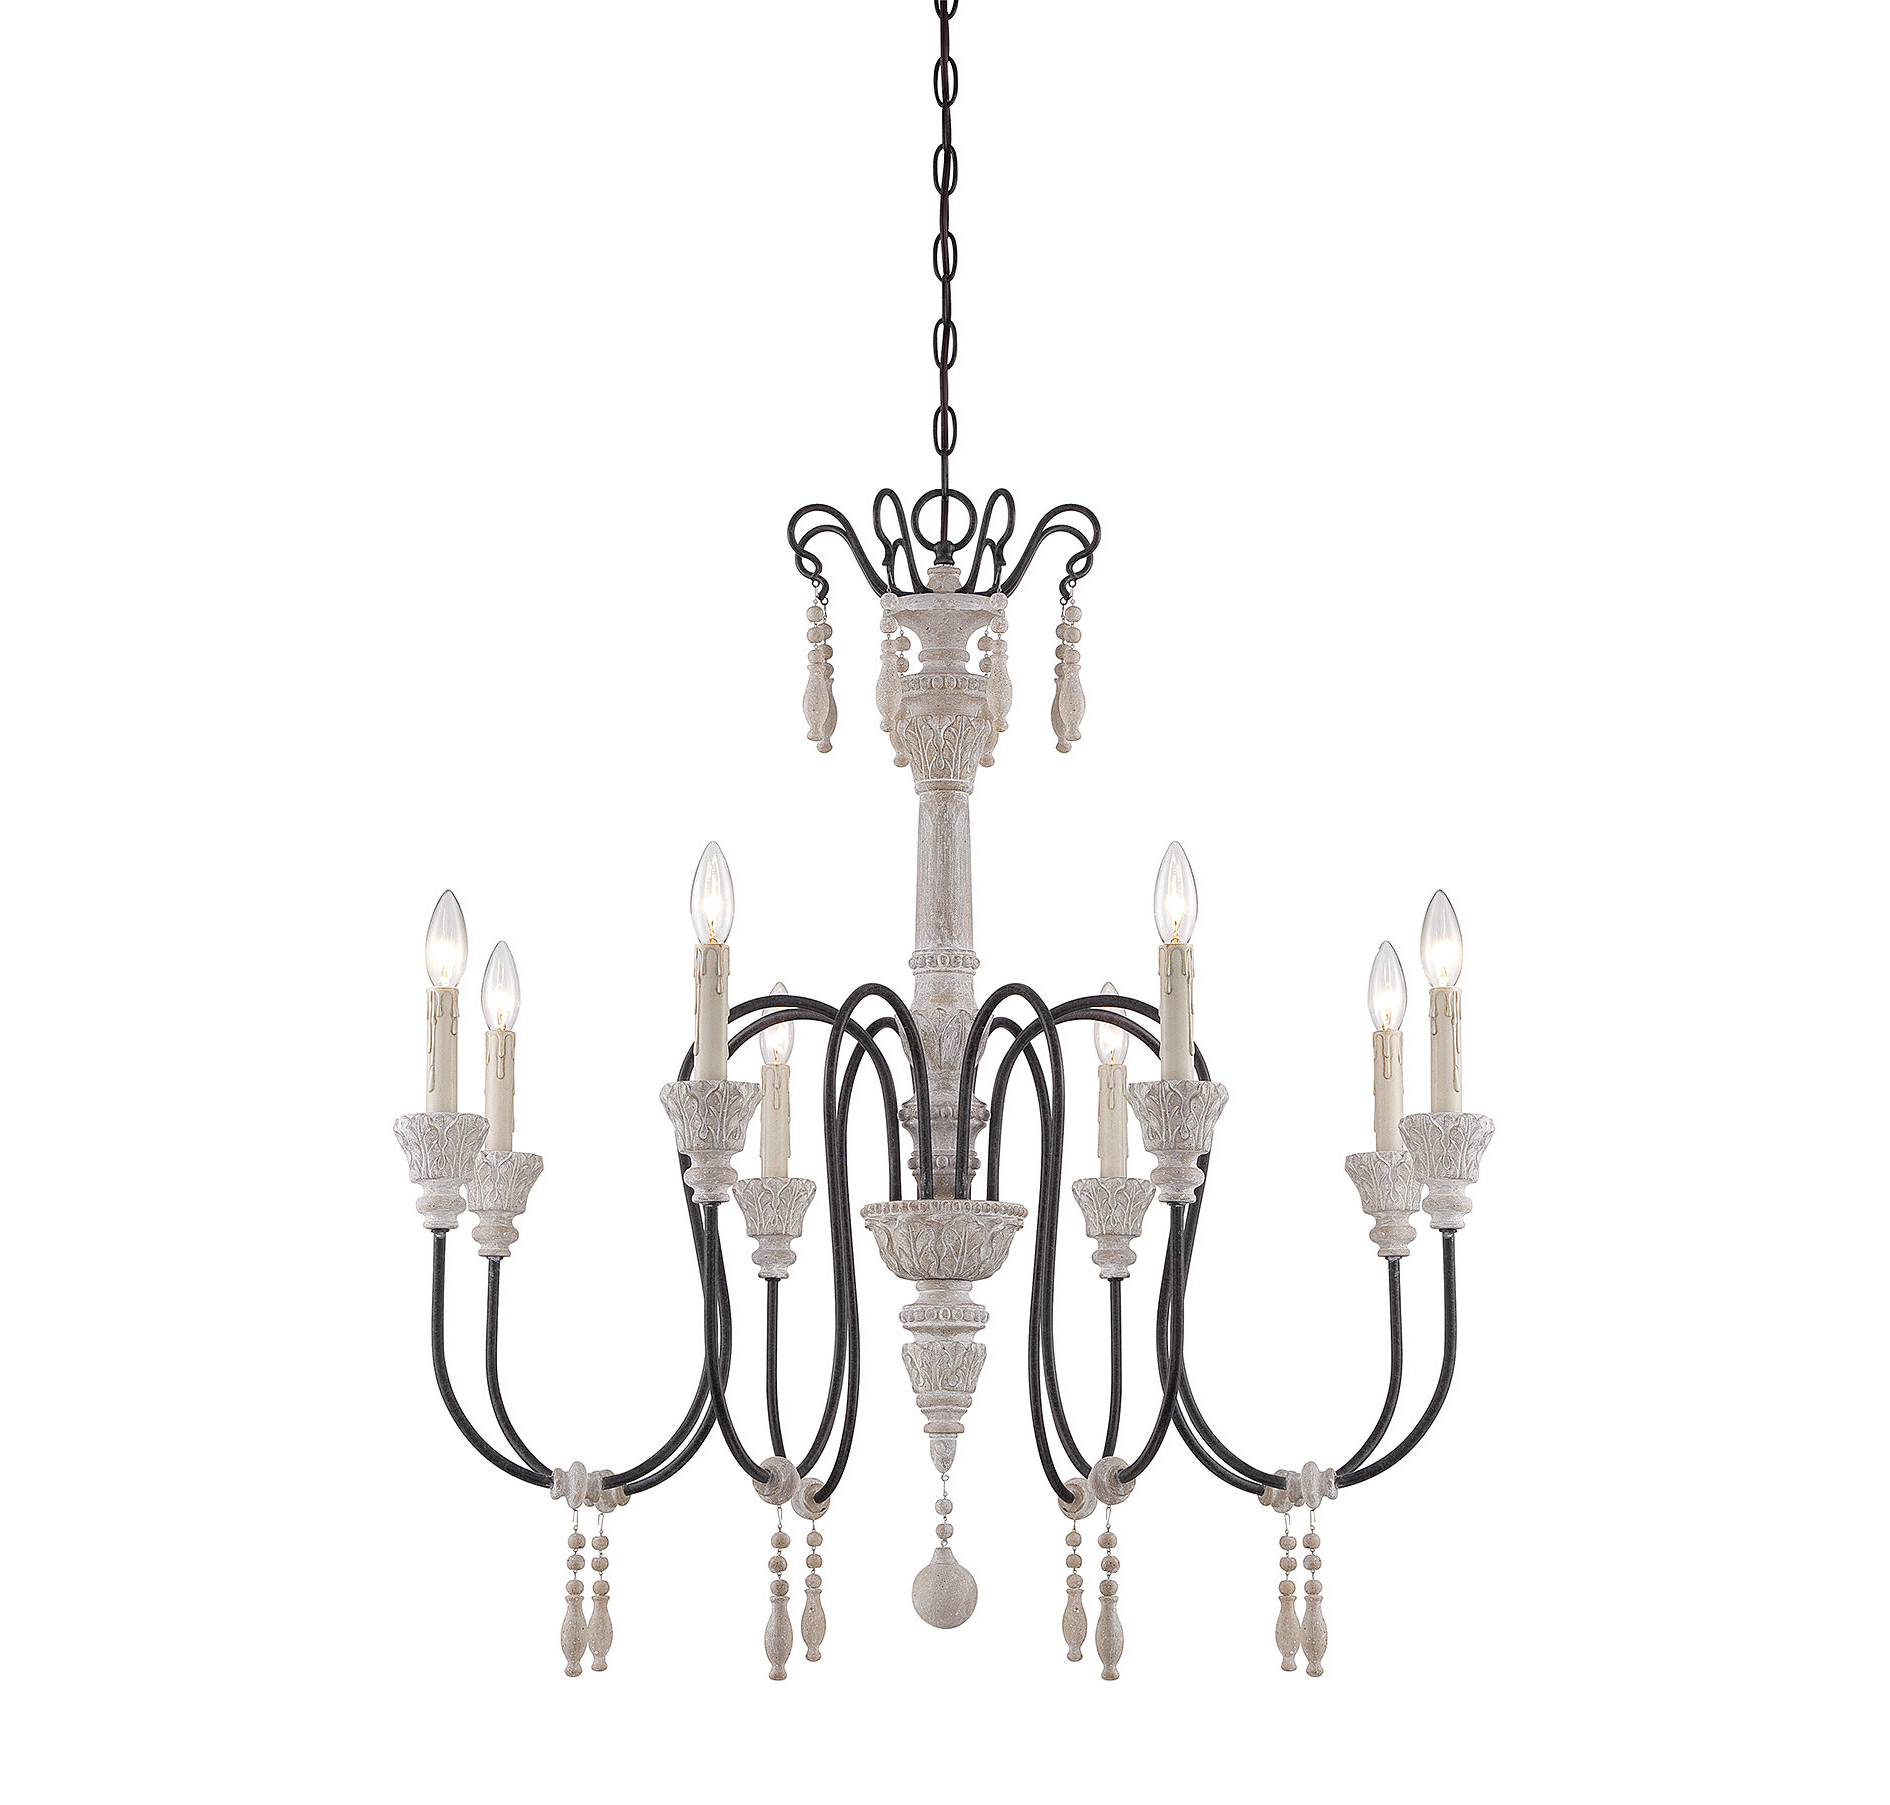 Ailsa 8 Light Candle Style Chandelier Within Newest Armande Candle Style Chandeliers (View 5 of 25)